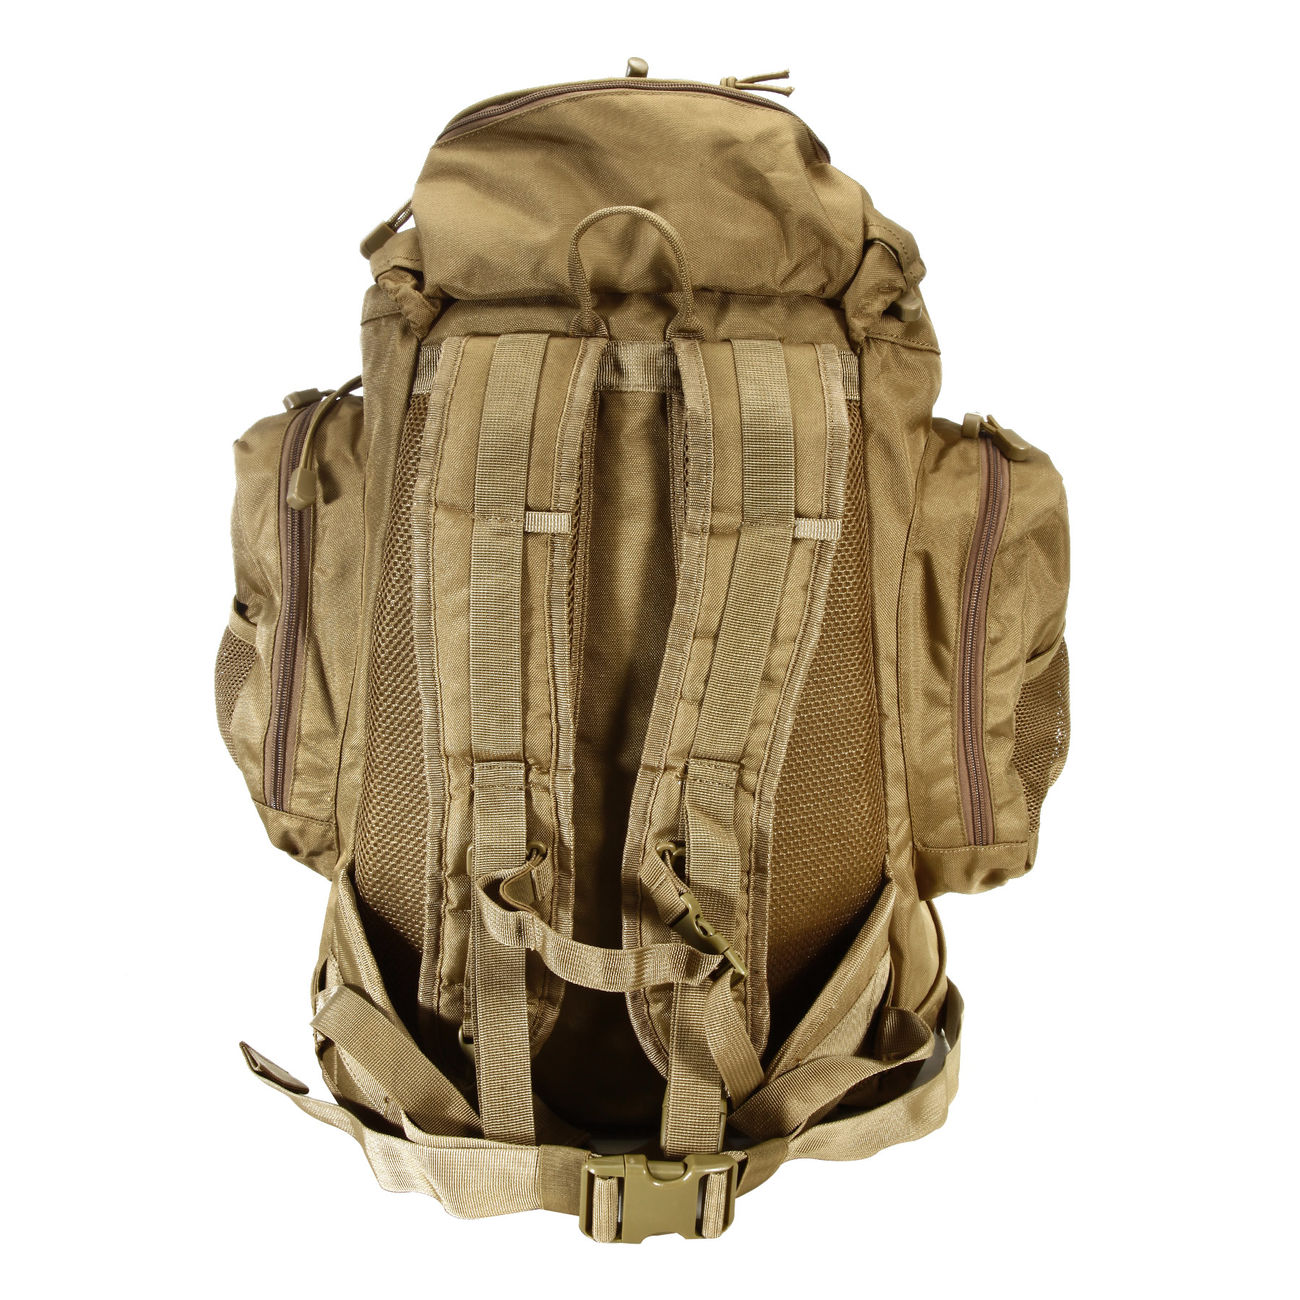 Defcon 5 Tactical Assault Rucksack Hydro 50L coyote tan 2